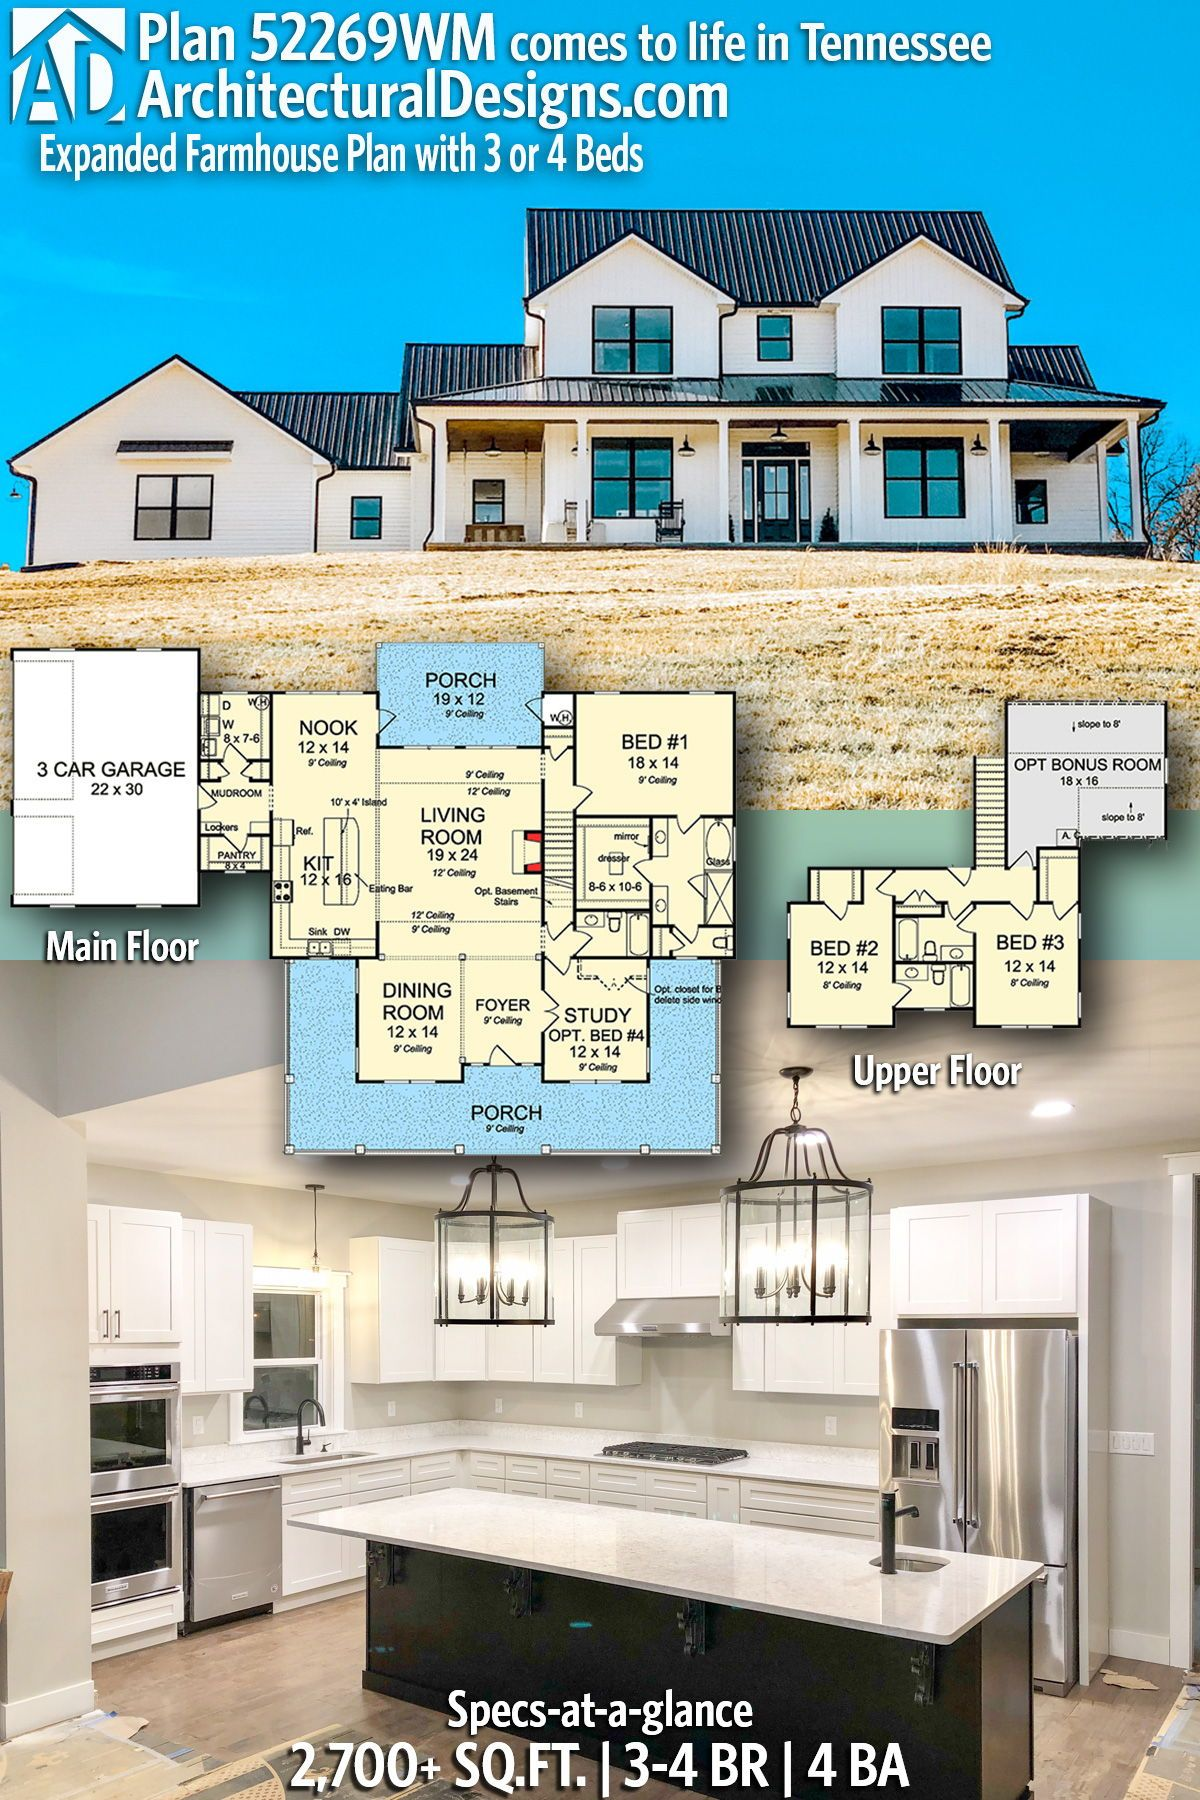 Architectural designs farmhouse plan wm client built in tennessee bedrooms also best floor plans images dream home house rh pinterest